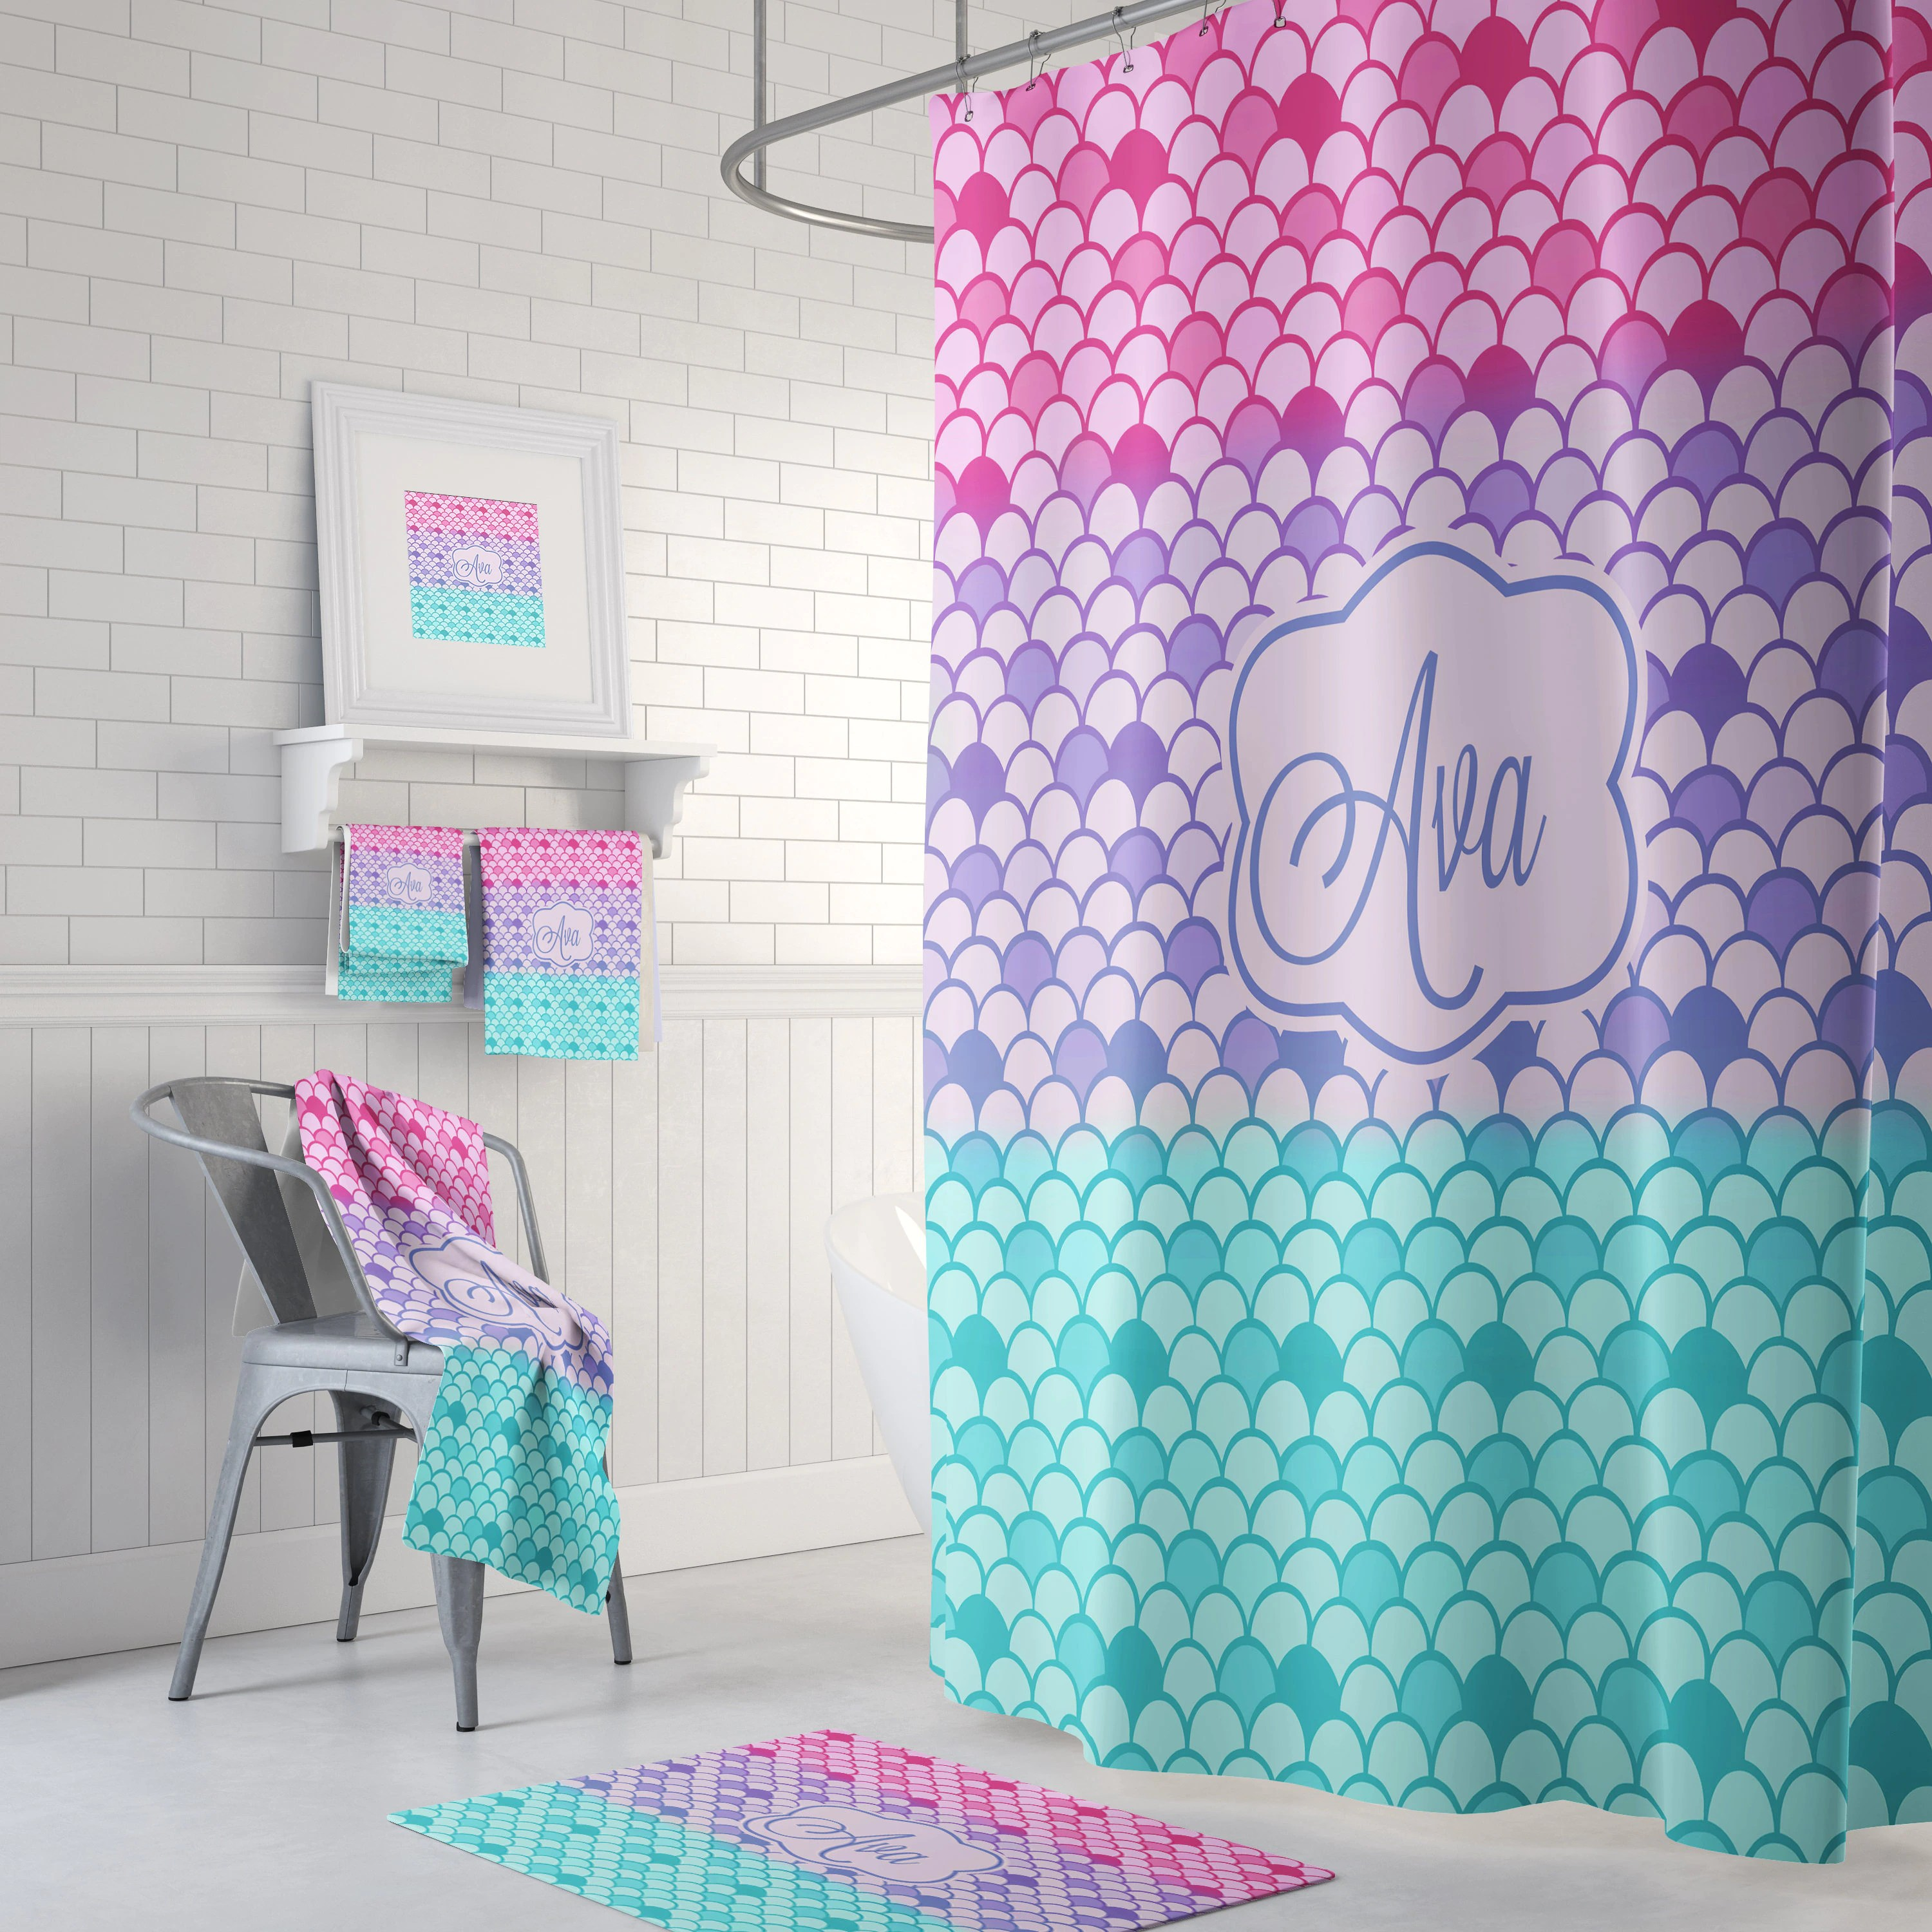 Mermaid Scale Shower Curtain Mermaid Scales Shower Curtain Bath Mat Towels Teal Pink